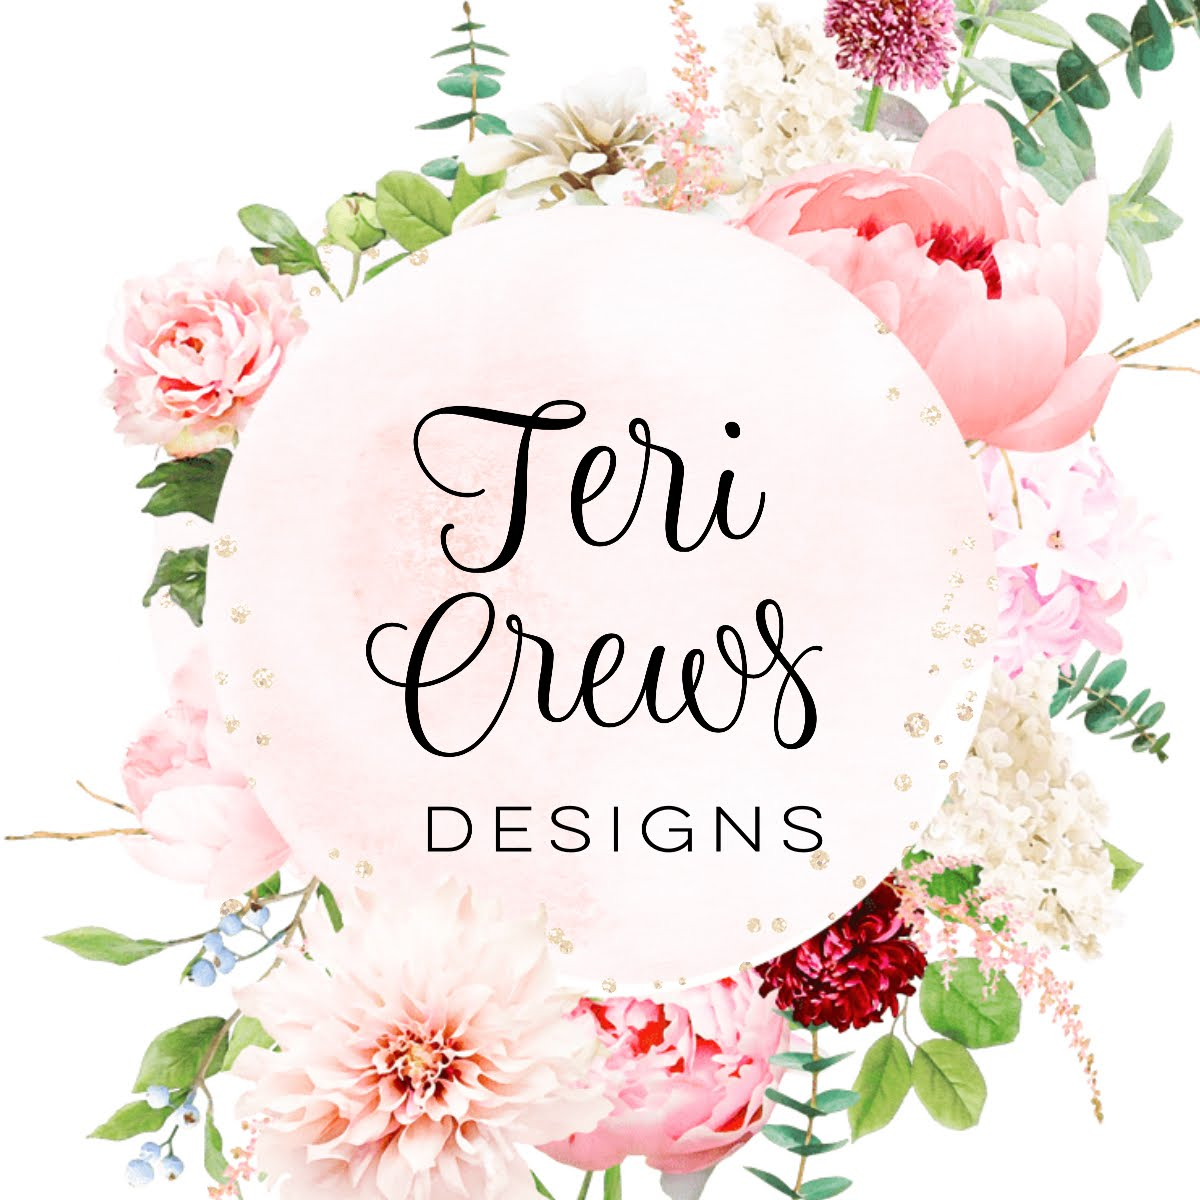 Teri Crews Designs Website